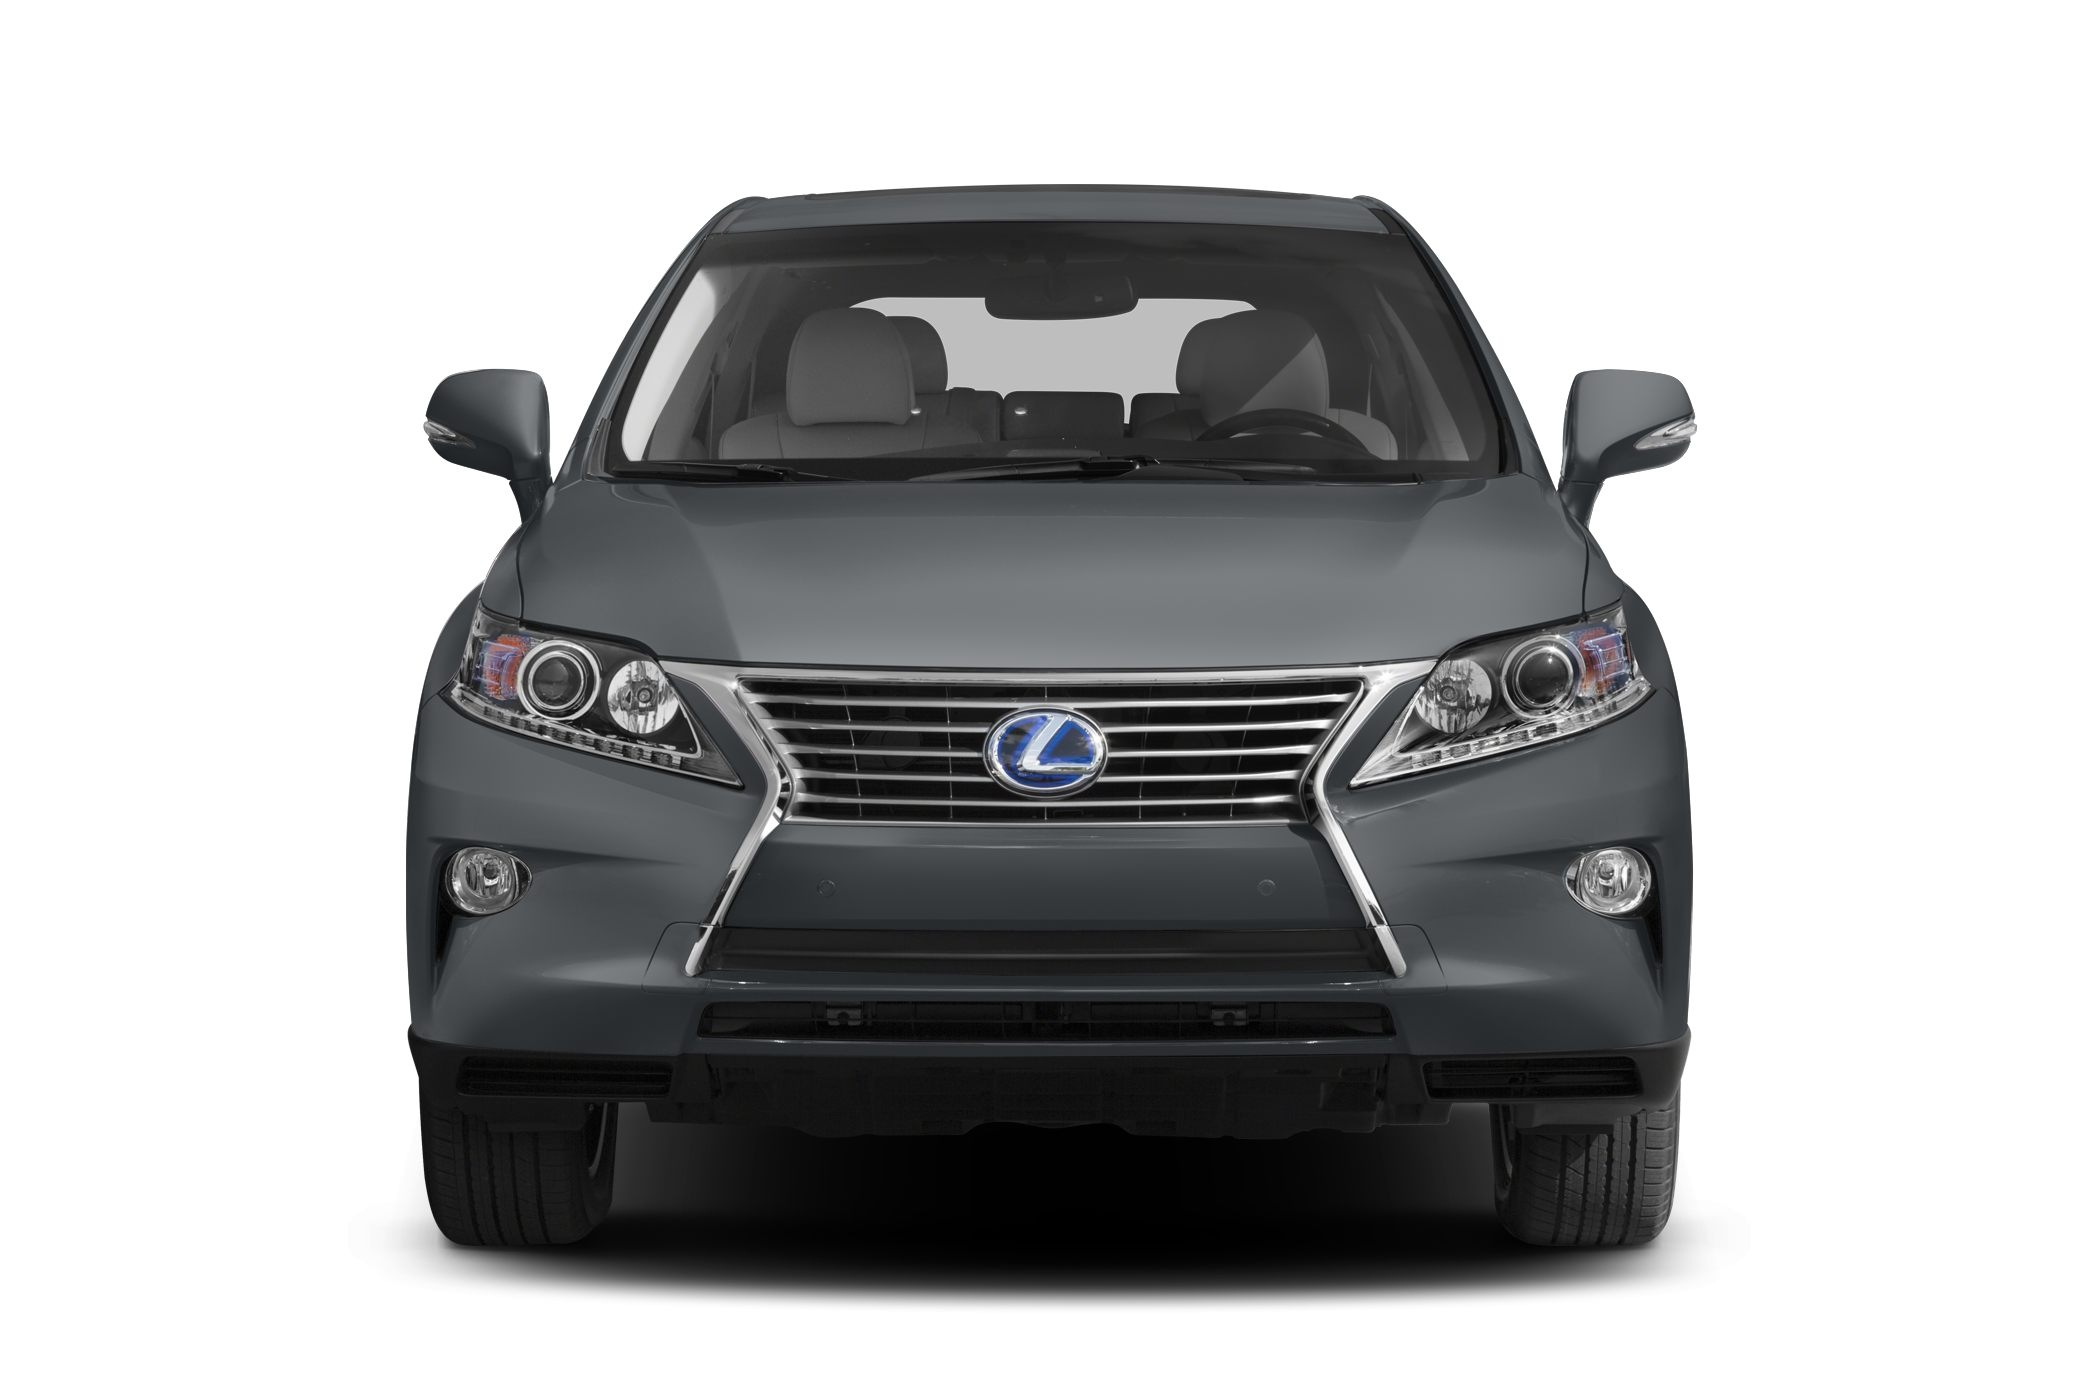 lexus 450h price pricing msrp not available invoice price not lexus invoice price